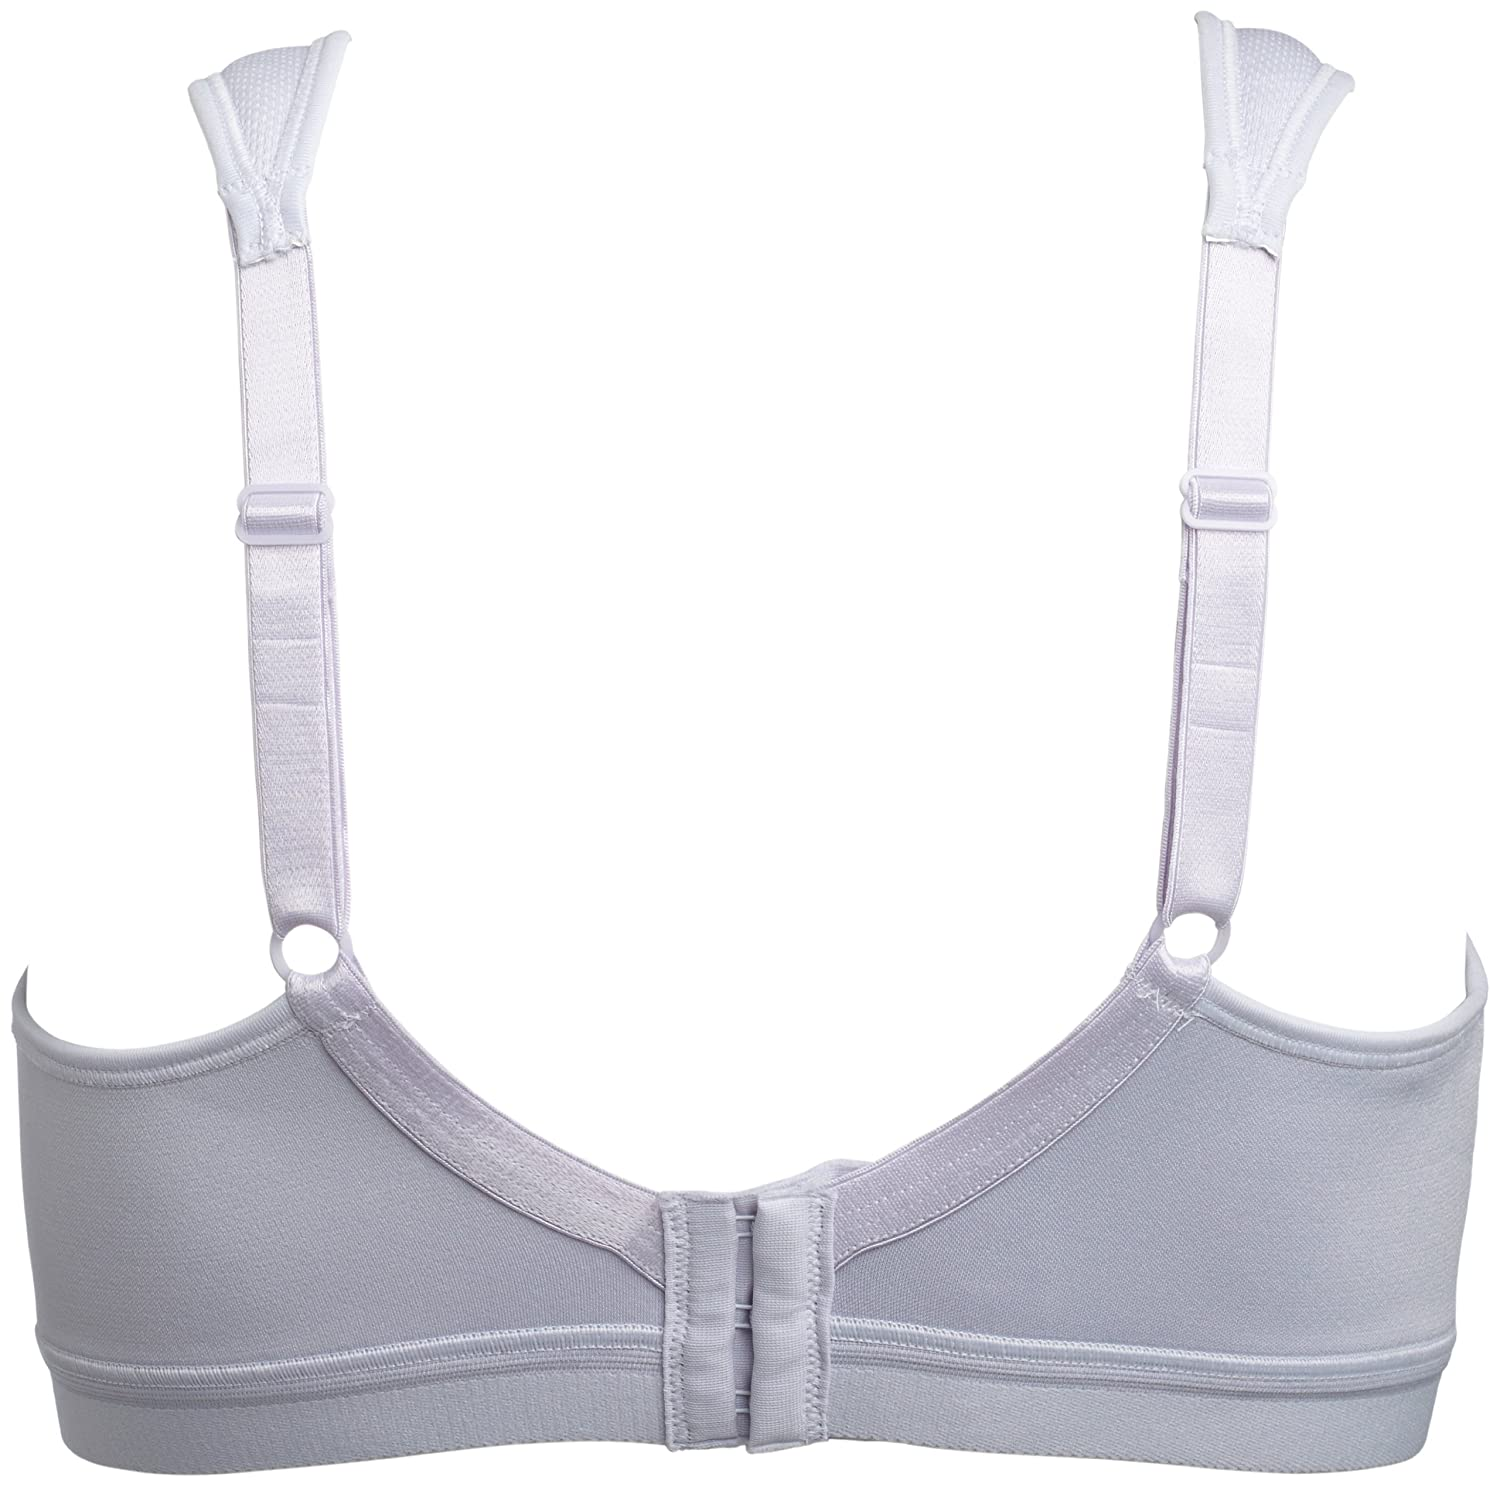 Playtex Womens 18 Hour Active Lifestyle Full Coverage Bra #4159